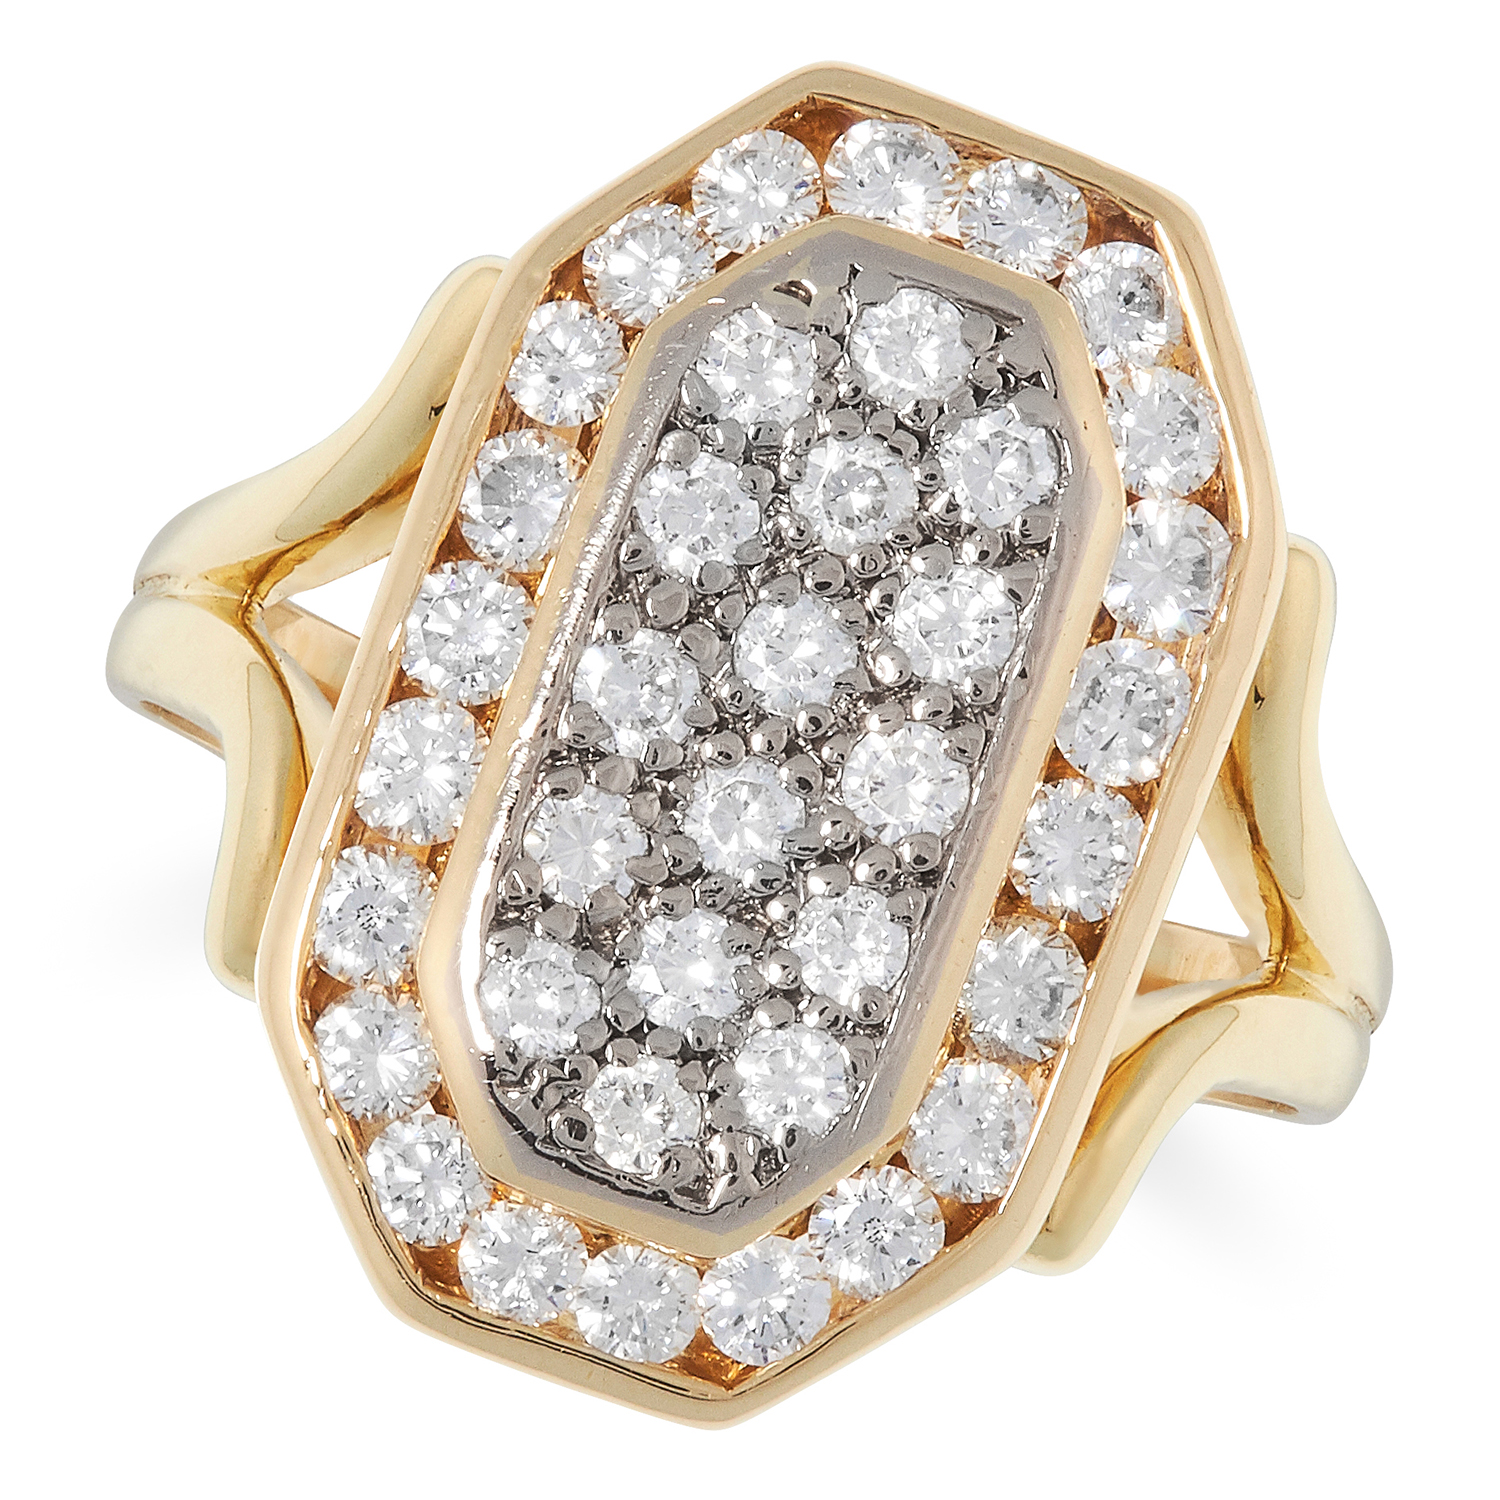 A DIAMOND DRESS RING, BOODLES the octagonal face pave set with round cut diamonds totalling 1.40